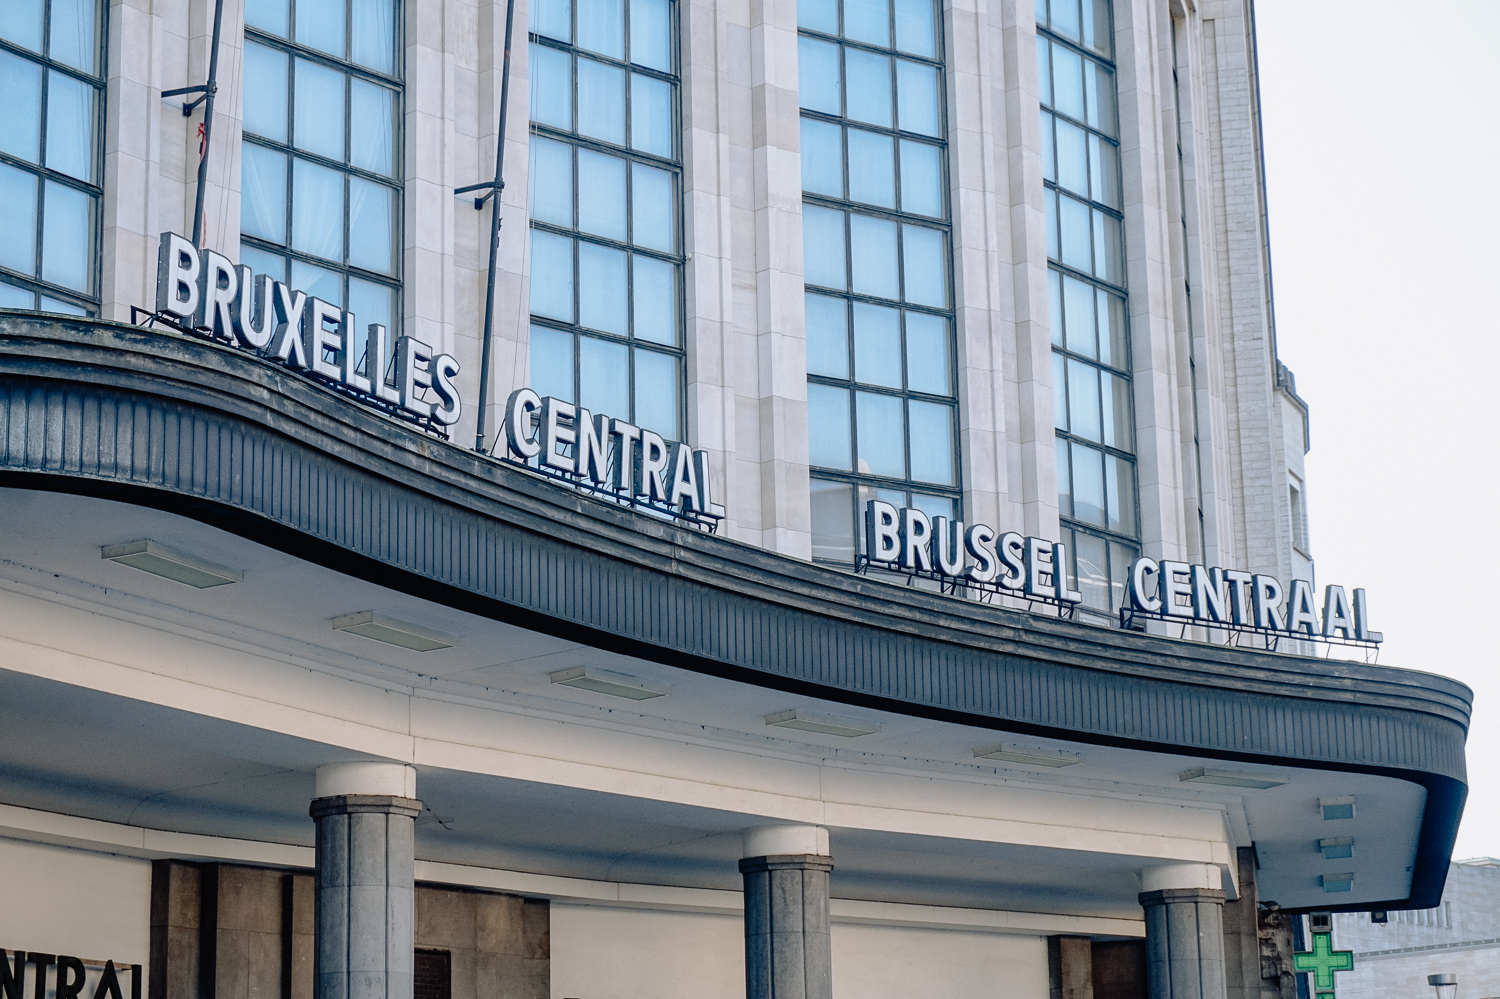 pretty naive | A Belgian Serie - Brussels Central Station